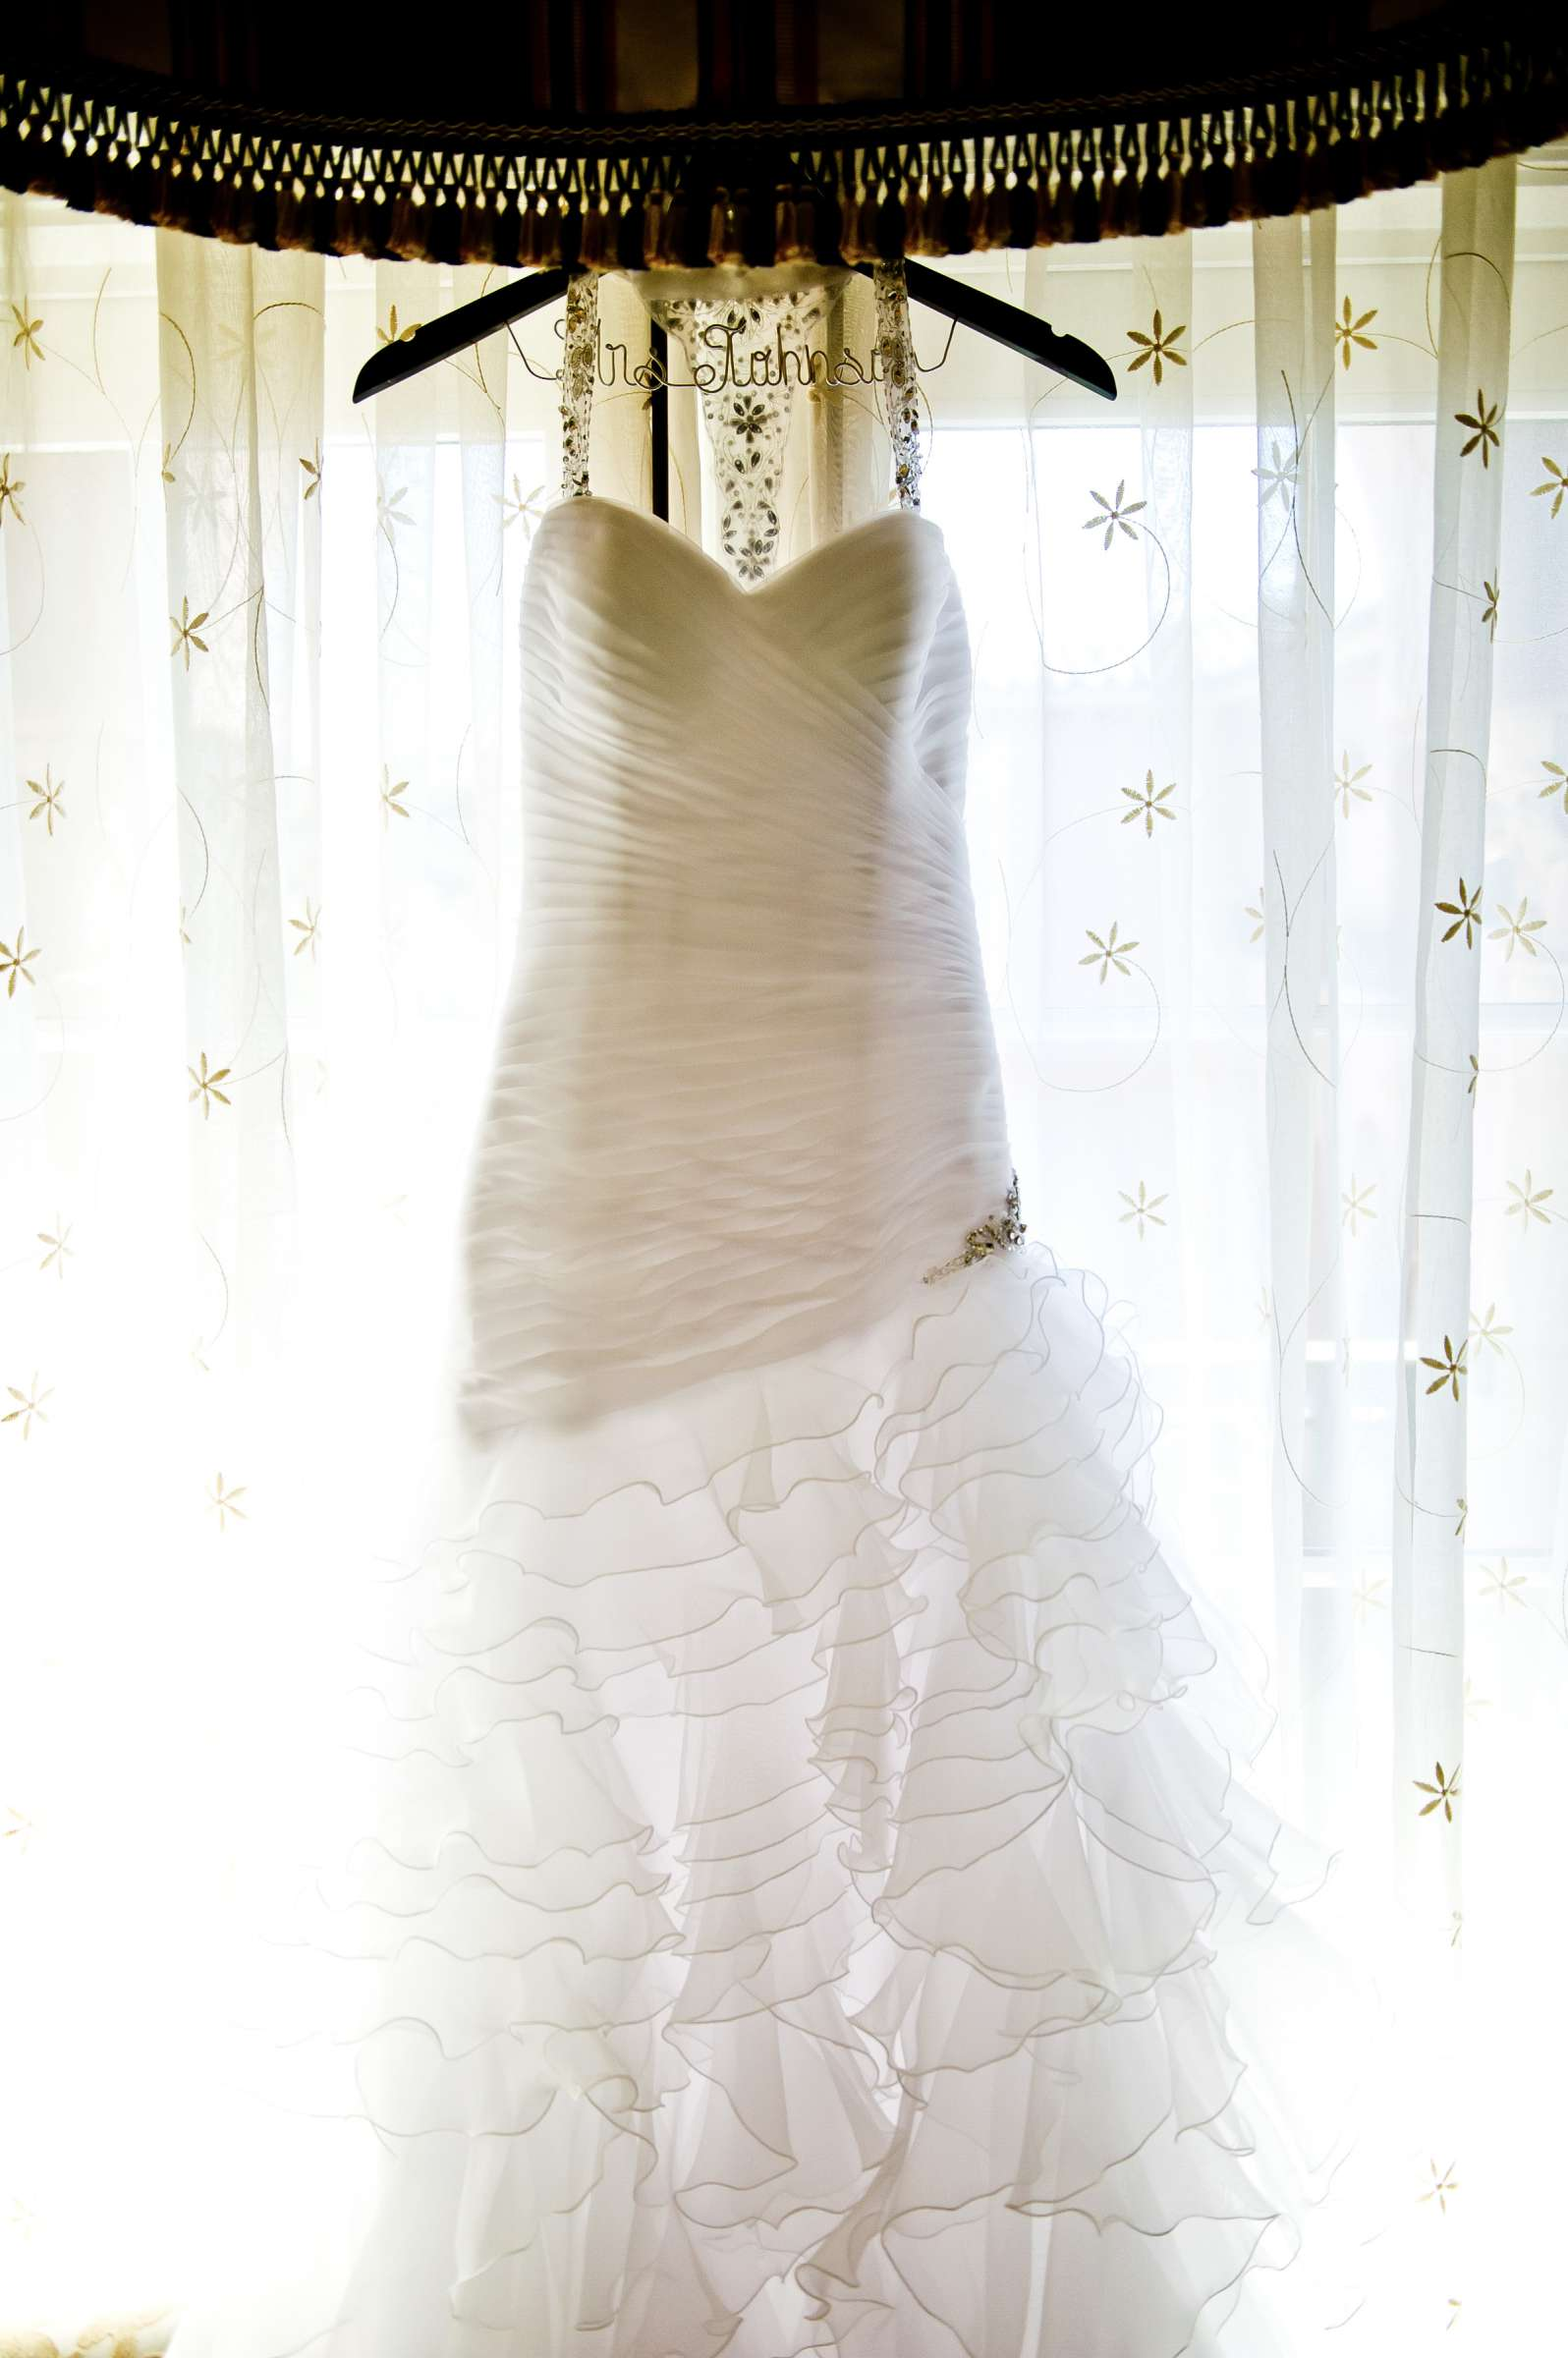 Fairmont Grand Del Mar Wedding, Angela and Tom Wedding Photo #14 by True Photography